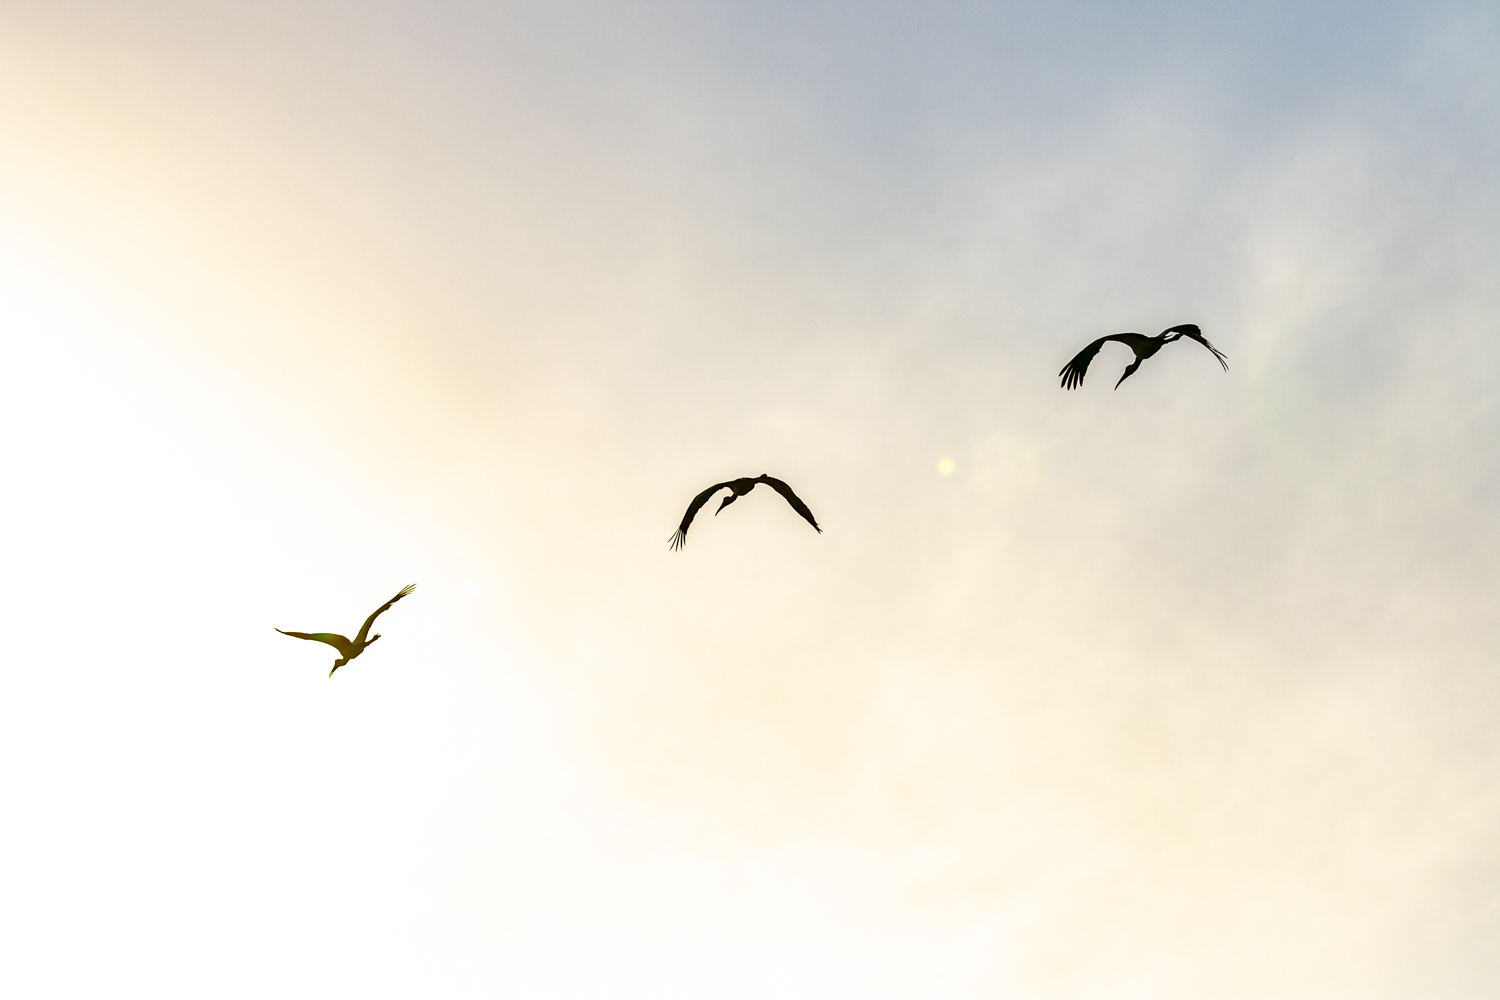 YELLOW BILLED STORKS SILHOUETTE